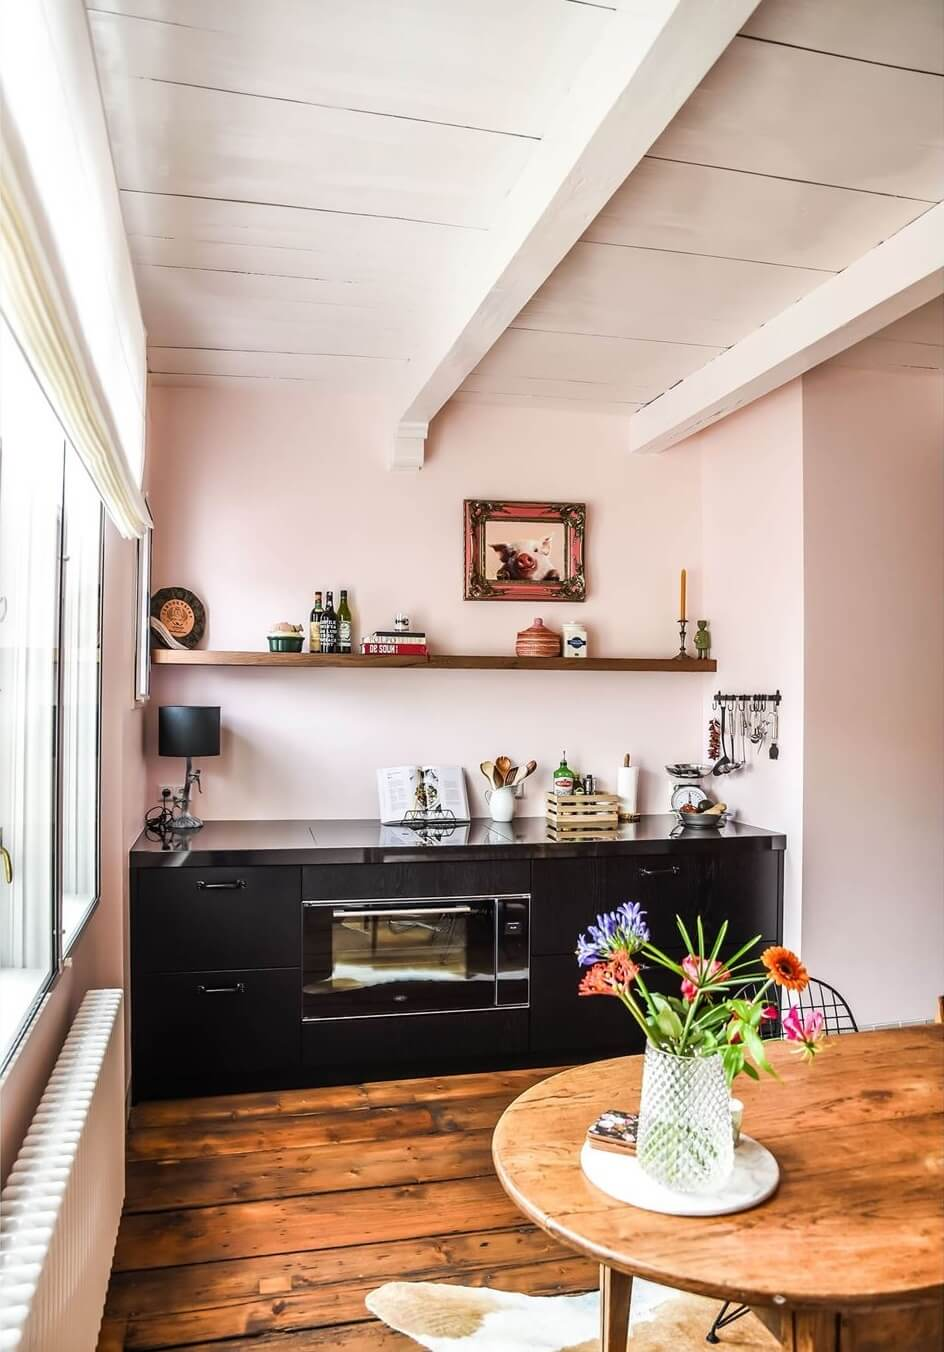 An Early 17th-Century Dutch Home Full Of Character